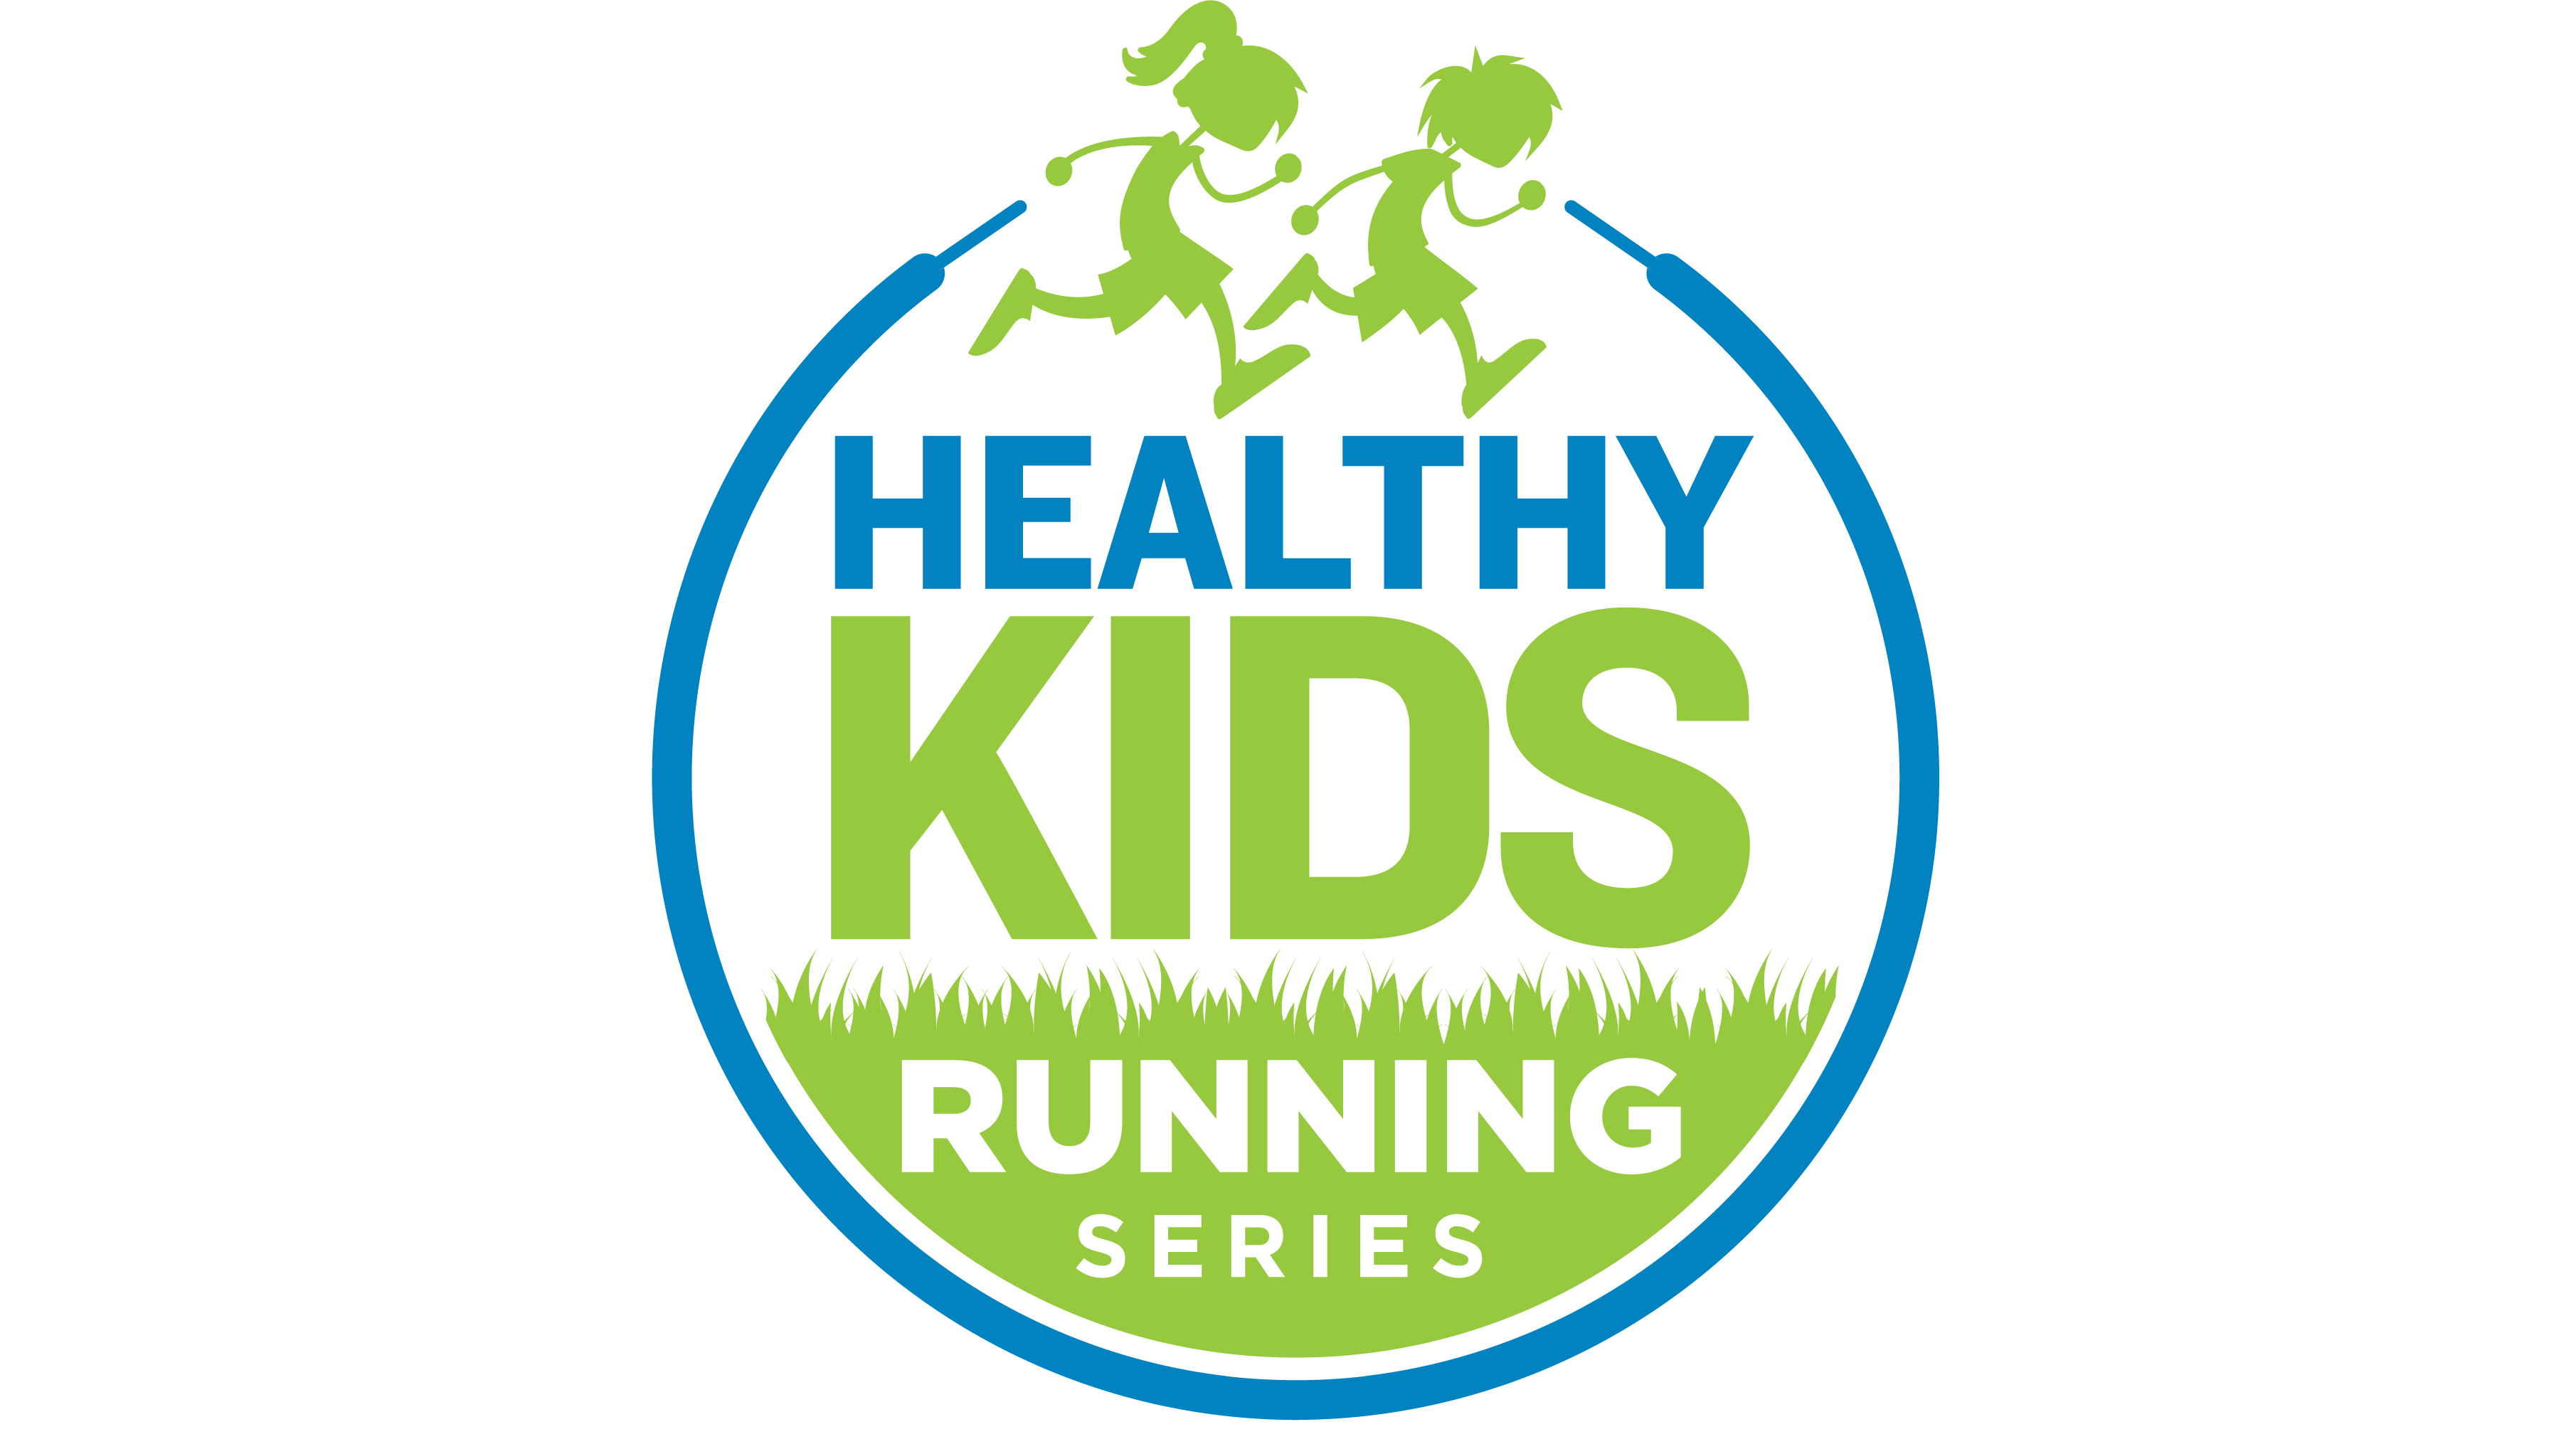 More Information on the Healthy Kids Runnig Series